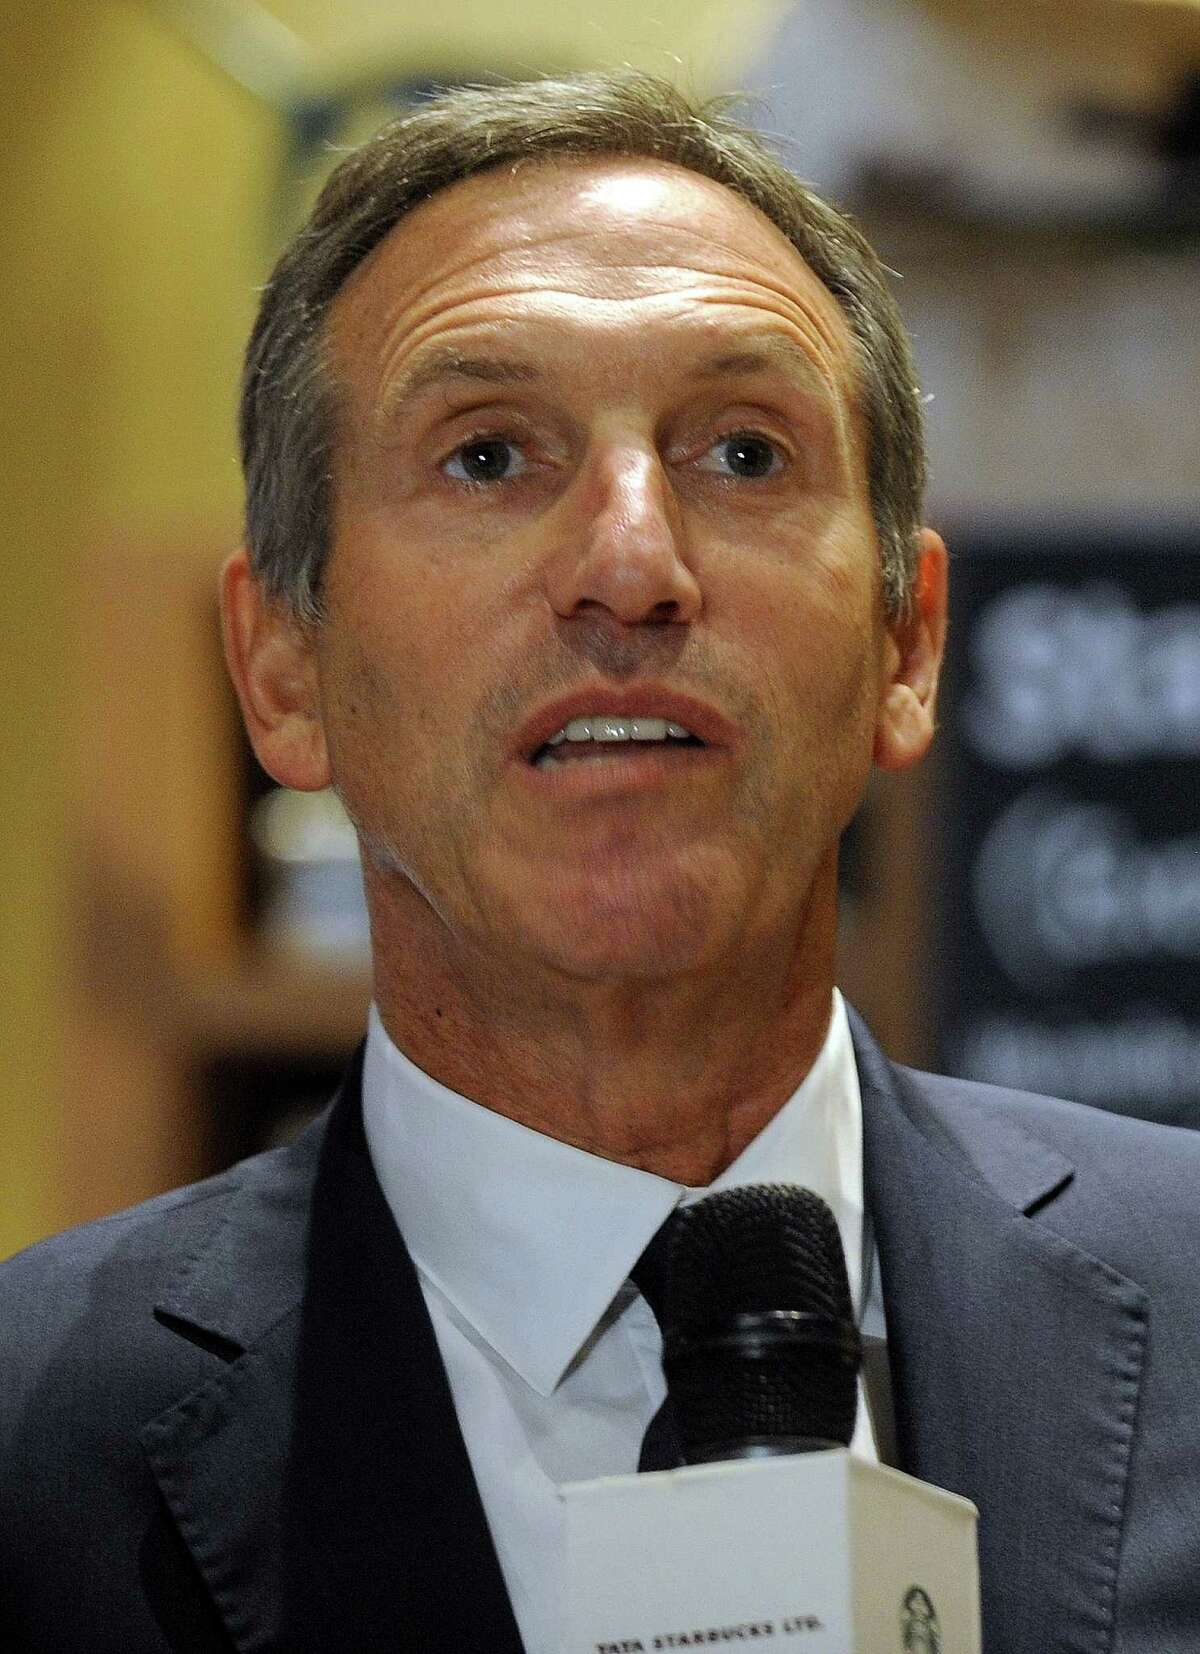 Just how important was the first Starbucks store in India? Important enough that CEO Howard Schultz was there to talk to reporters. (PUNIT PARANJPE/AFP/Getty Images)